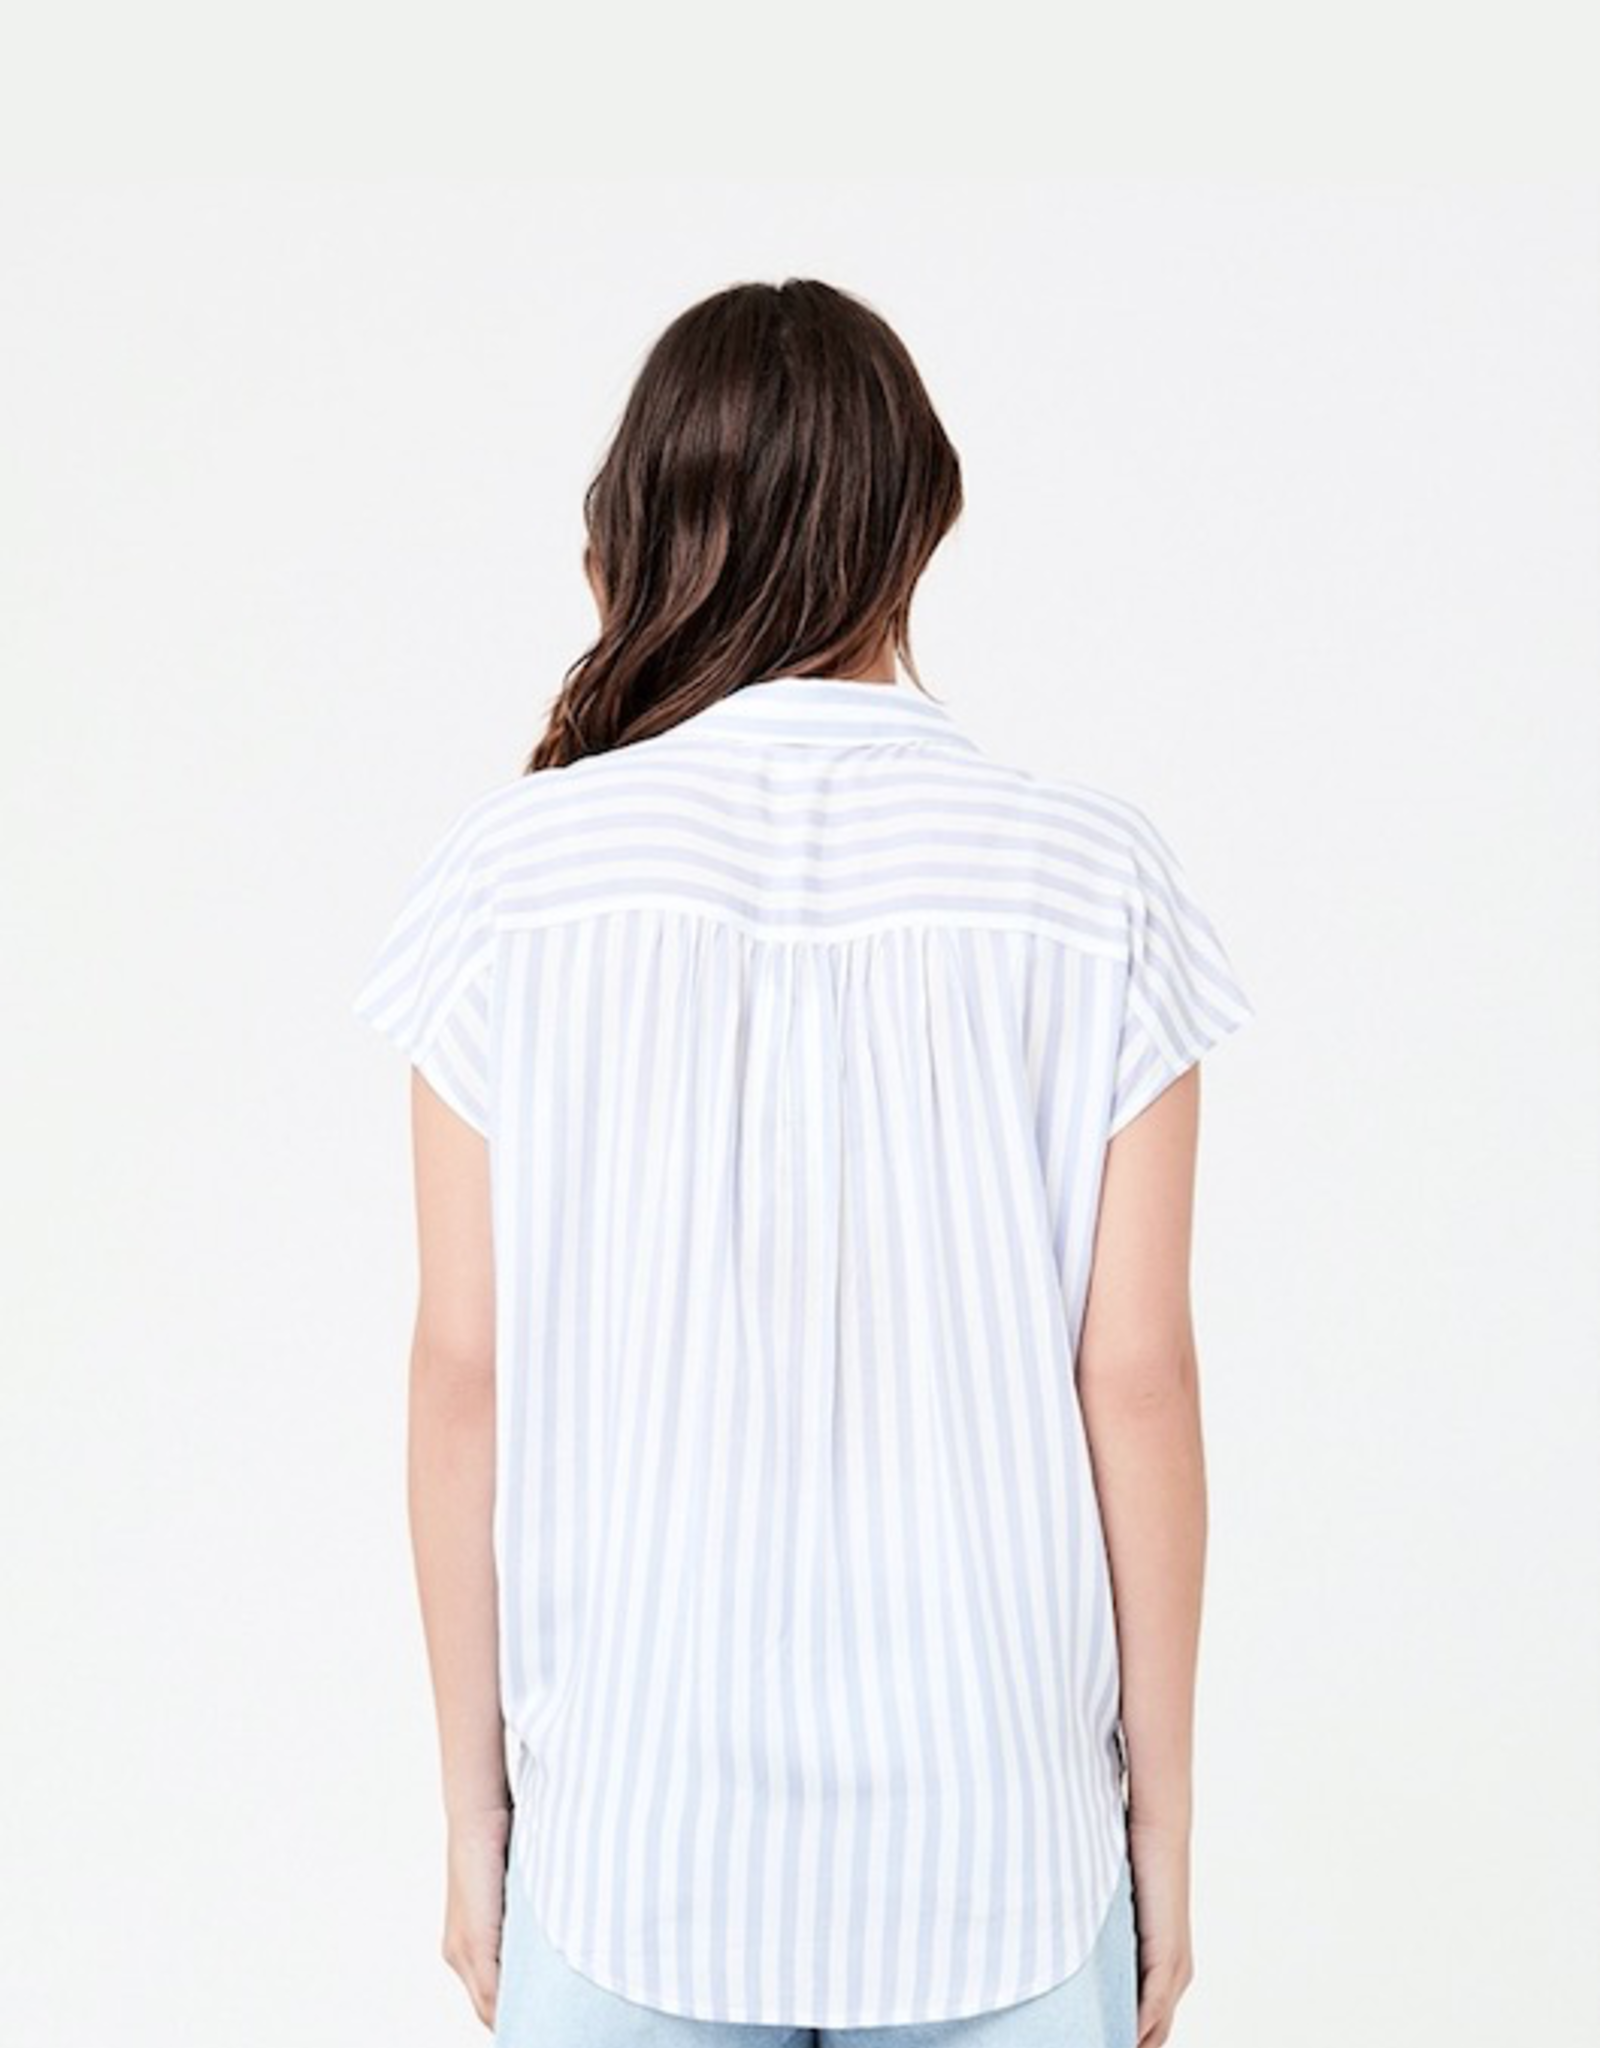 Ripe Maternity Quinn Relaxed Shirt in Blue/White